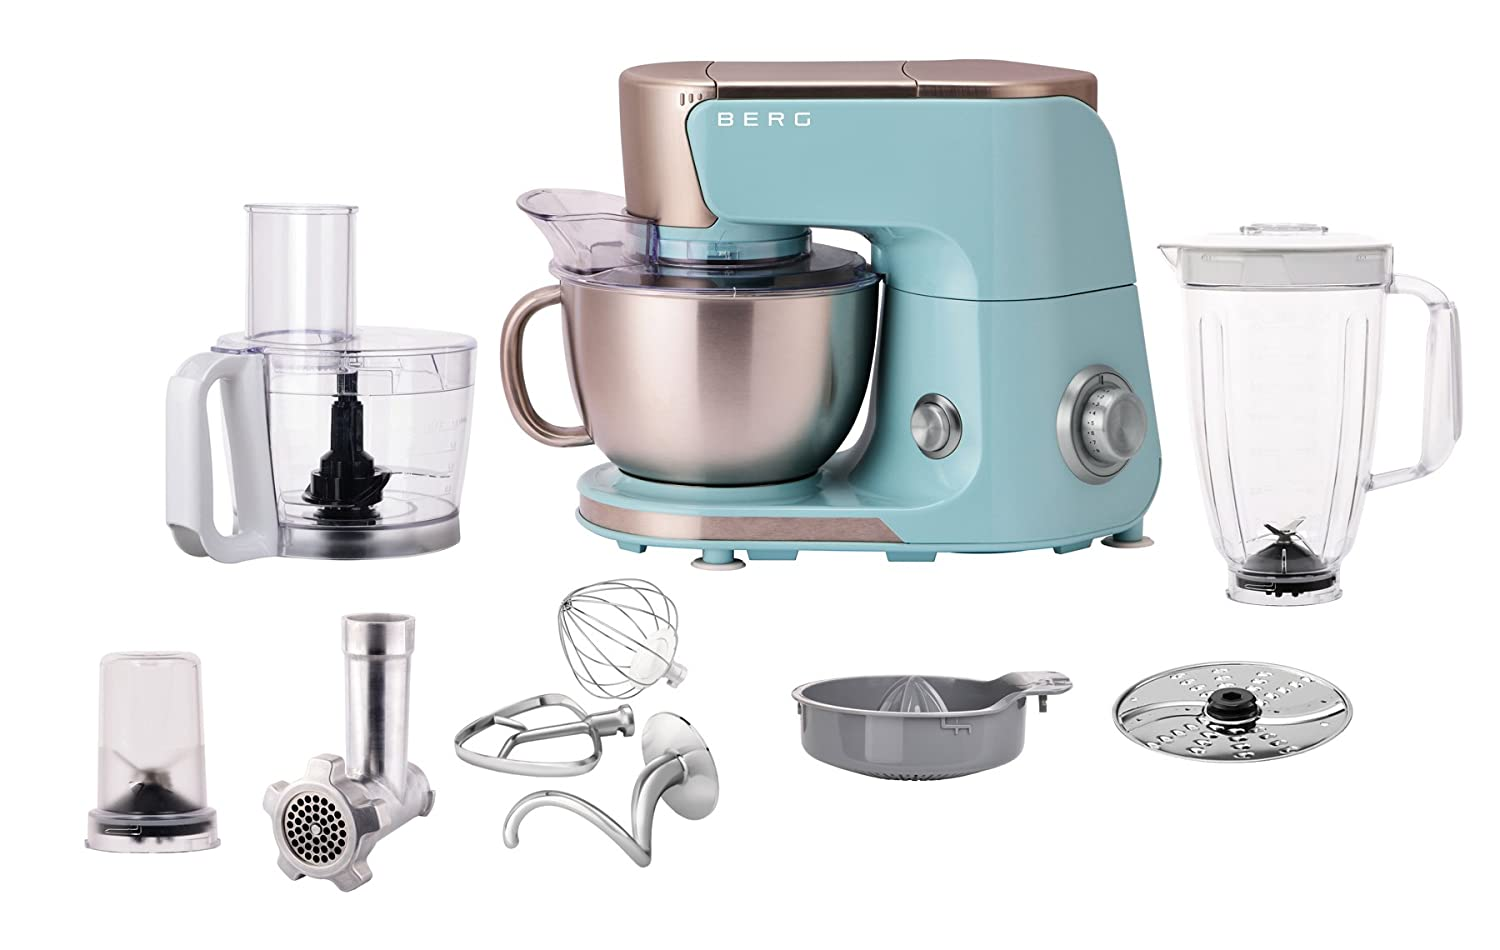 Berg 1000 Watt 4 Litre Electric Kitchen Food Stand 10 in 1 Multi Mixer With Bowl, Splash Guard, Dough Hook, Whisk, Beater, Juicer, Blender, Food Processor, Meat Grinder, Coffee Mill (Blue)